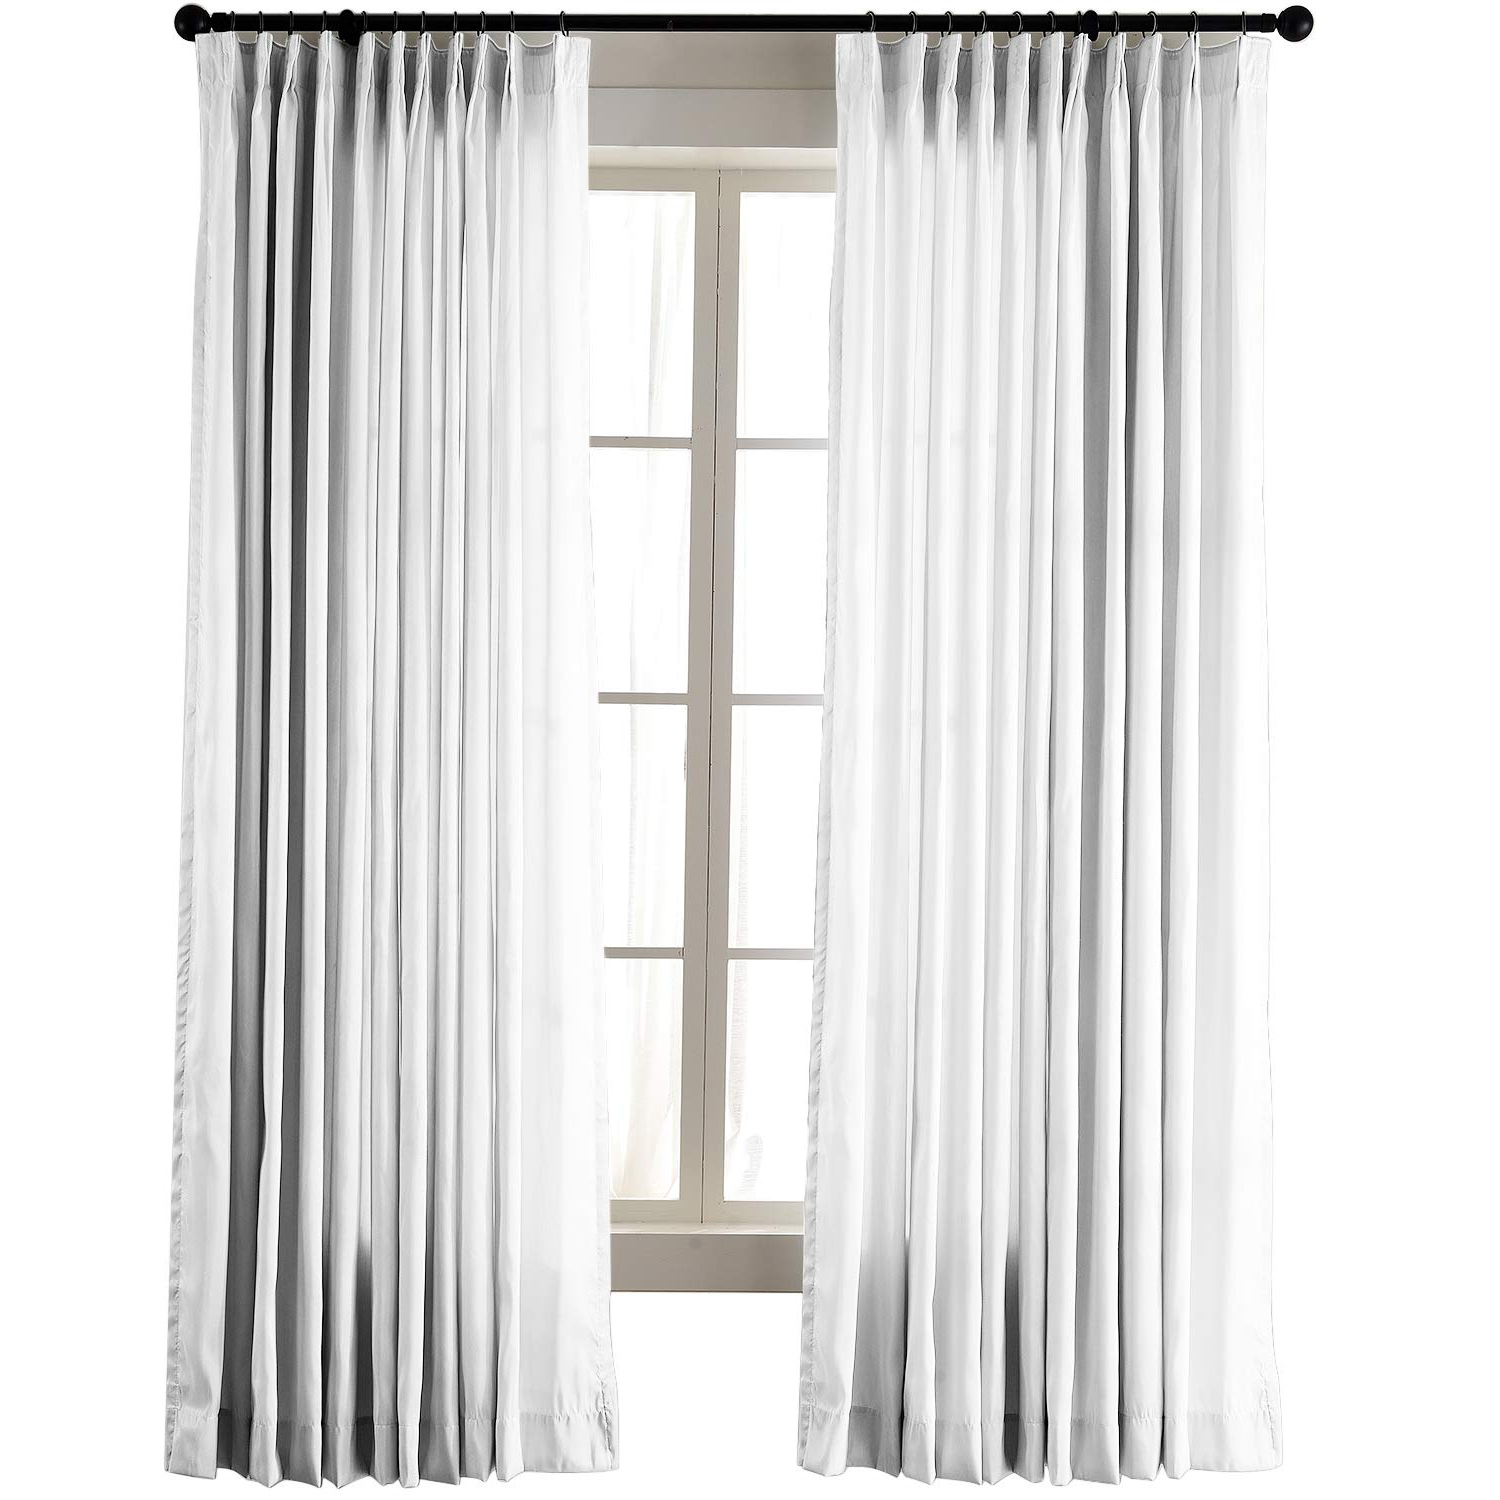 "Current Chadmade Vintage Textured Faux Dupioni Silk Drape Curtain Panel Pinch  Pleated 72"" W X 84"" L With White Blackout Lined, White Ivory With Storm Grey Vintage Faux Textured Dupioni Single Silk Curtain Panels (View 2 of 20)"